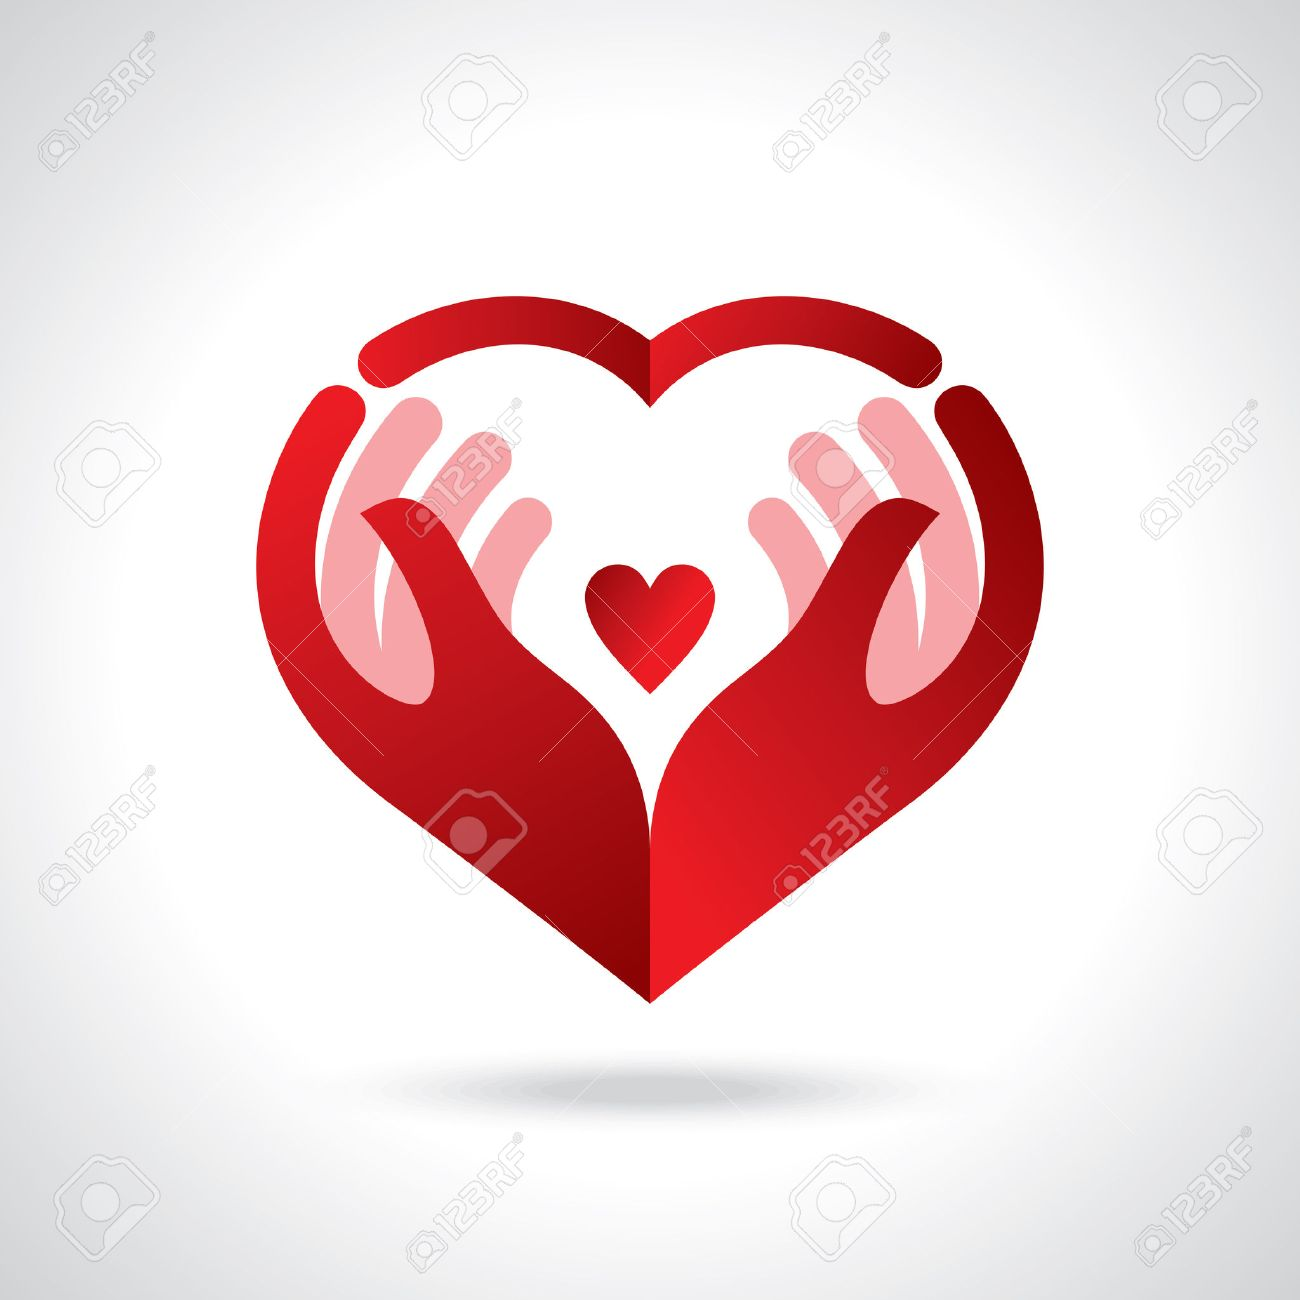 Icon of kindness and charity, Hands and heart. Standard-Bild - 61580968